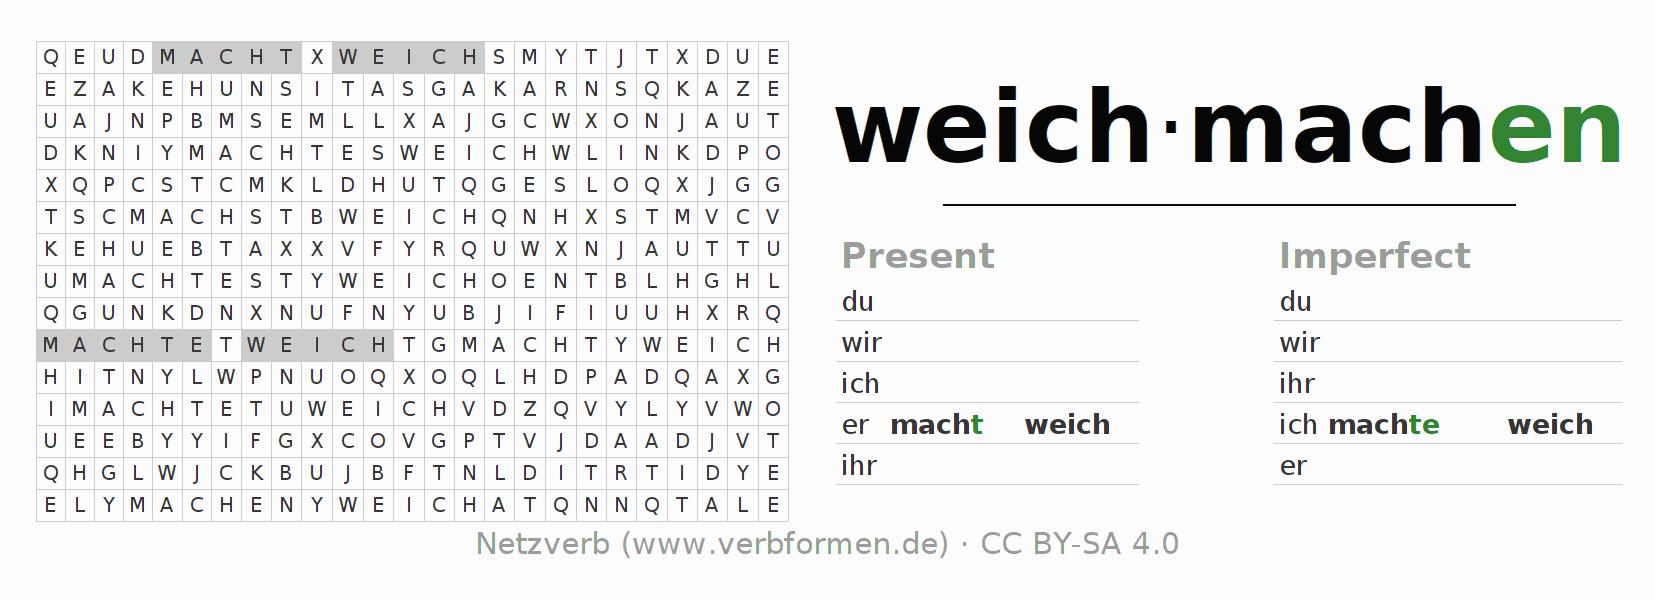 Word search puzzle for the conjugation of the verb weichmachen